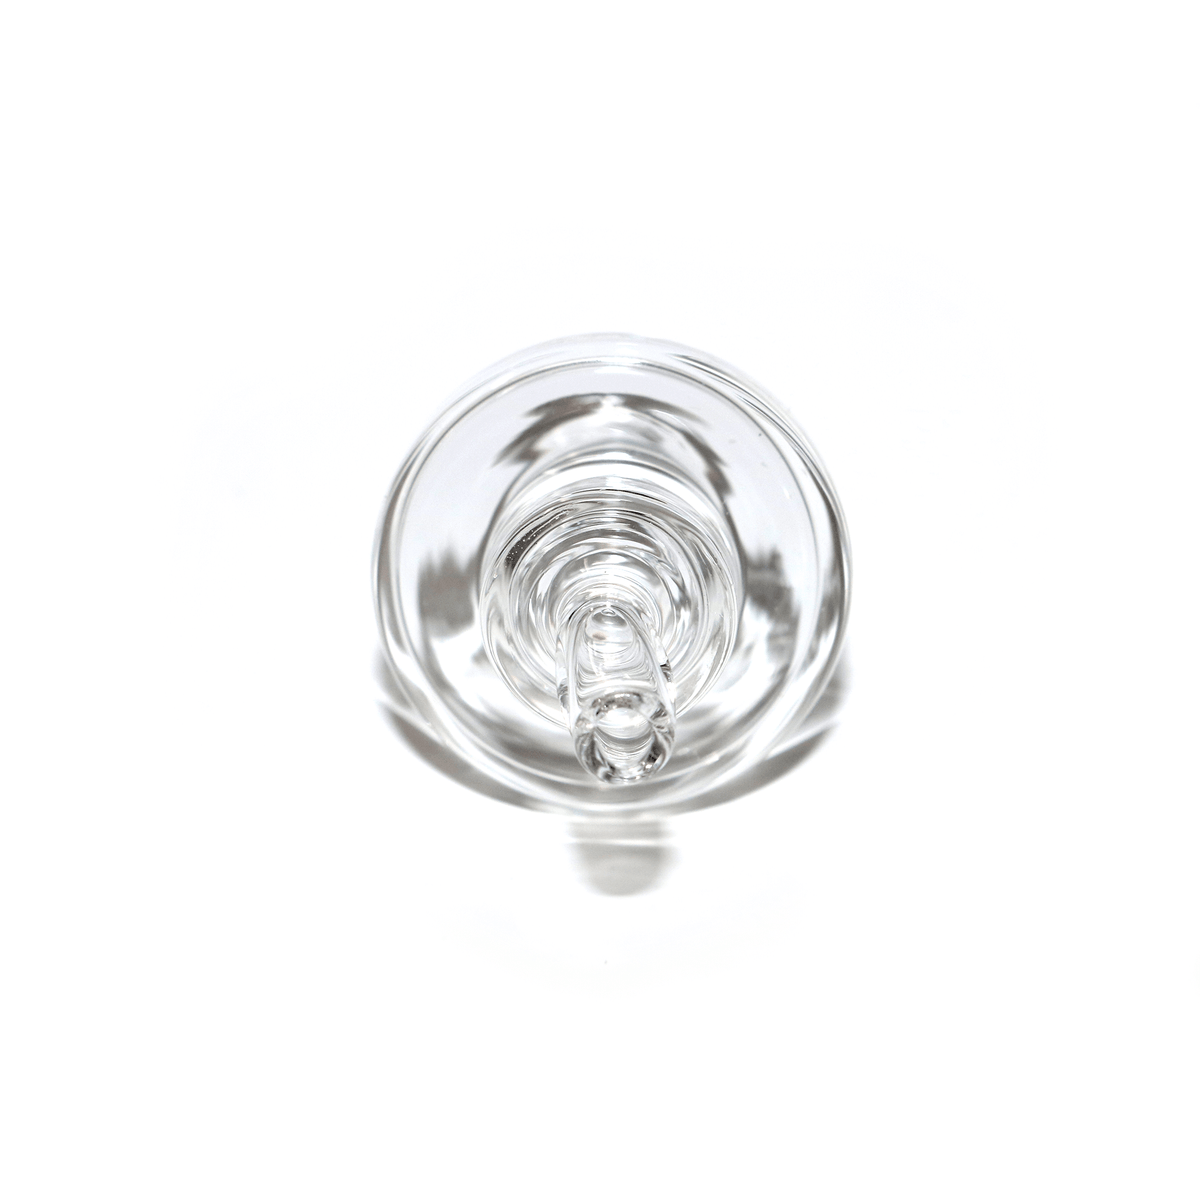 Directional Carb Cap - Clear, Spinning